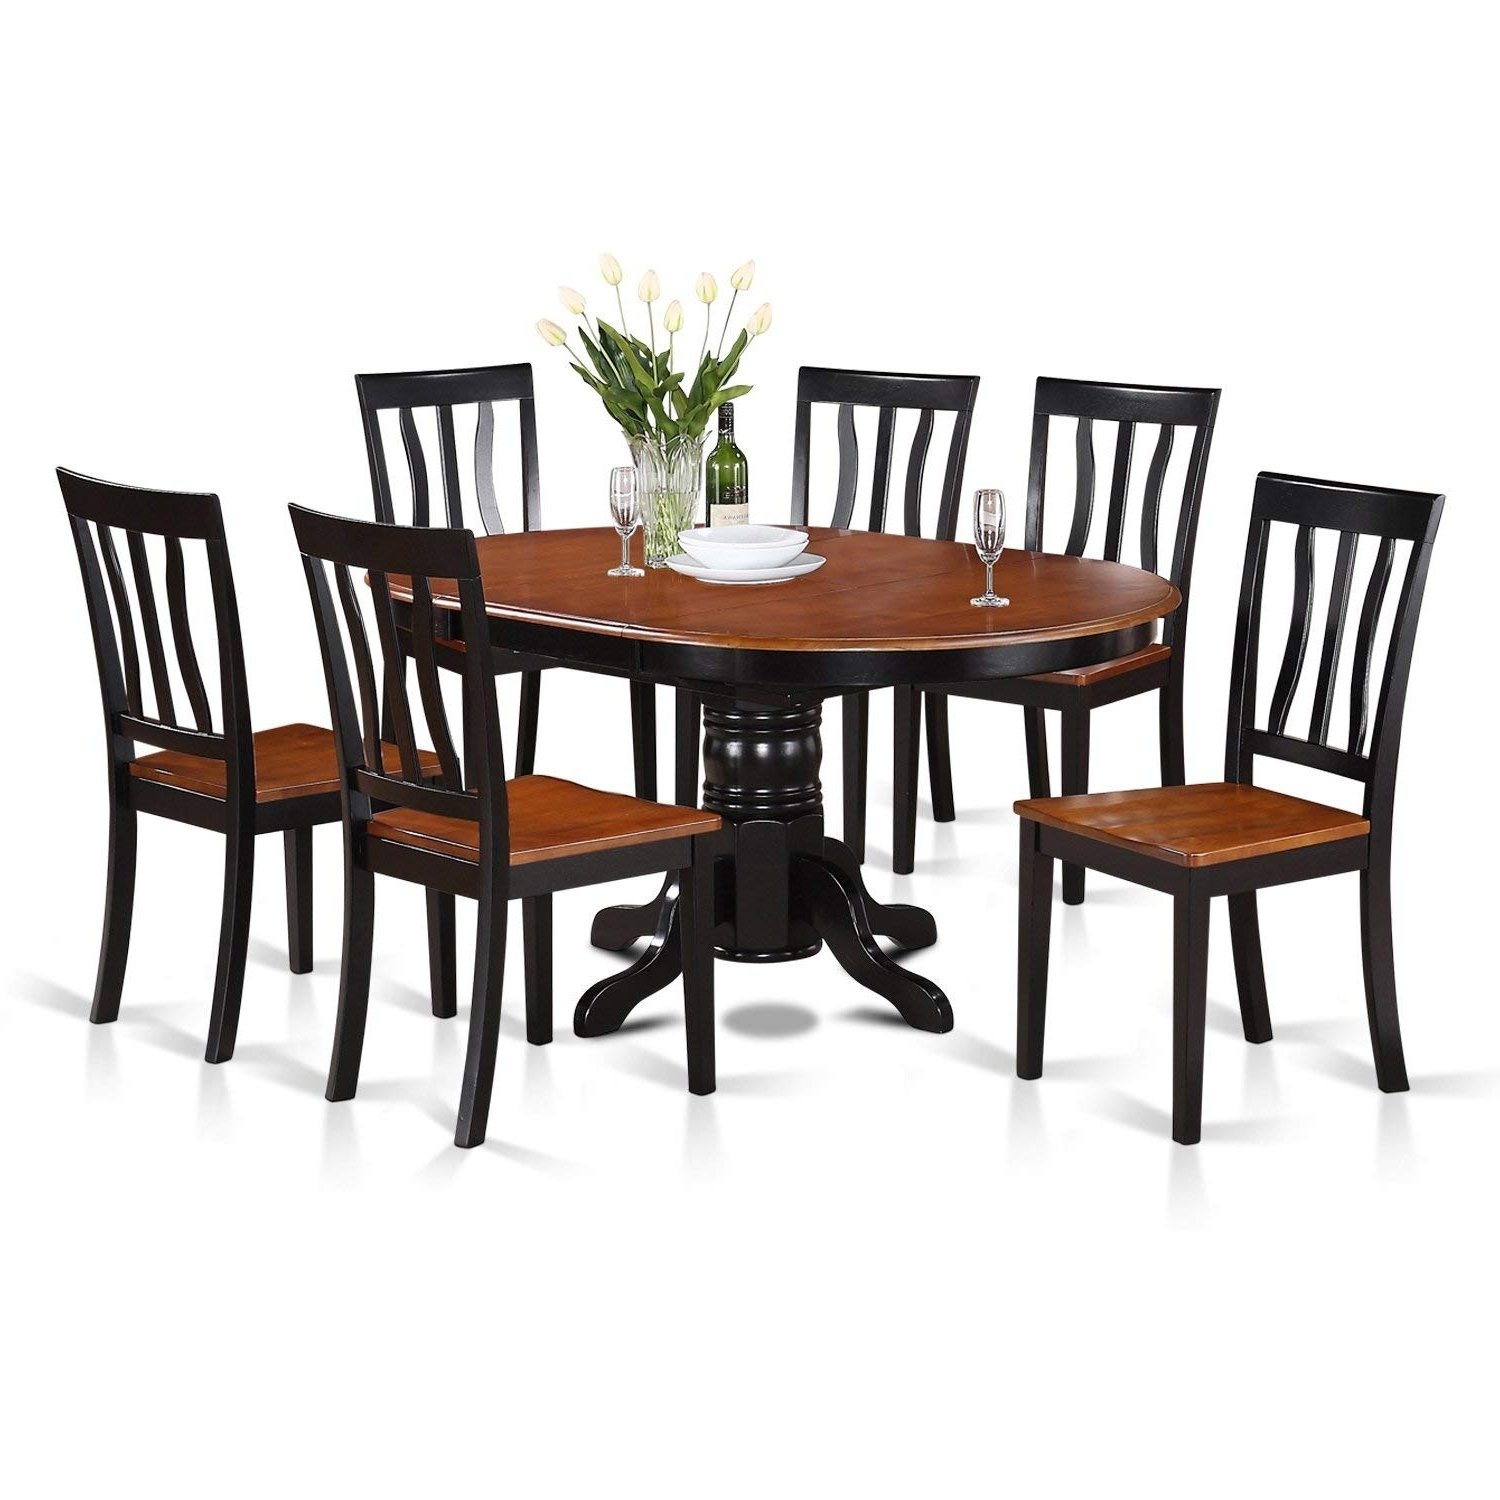 2018 Jaxon Grey 5 Piece Round Extension Dining Sets With Wood Chairs With Amazon: East West Furniture Avat7 Blk W 7 Piece Dining Table Set (View 8 of 25)